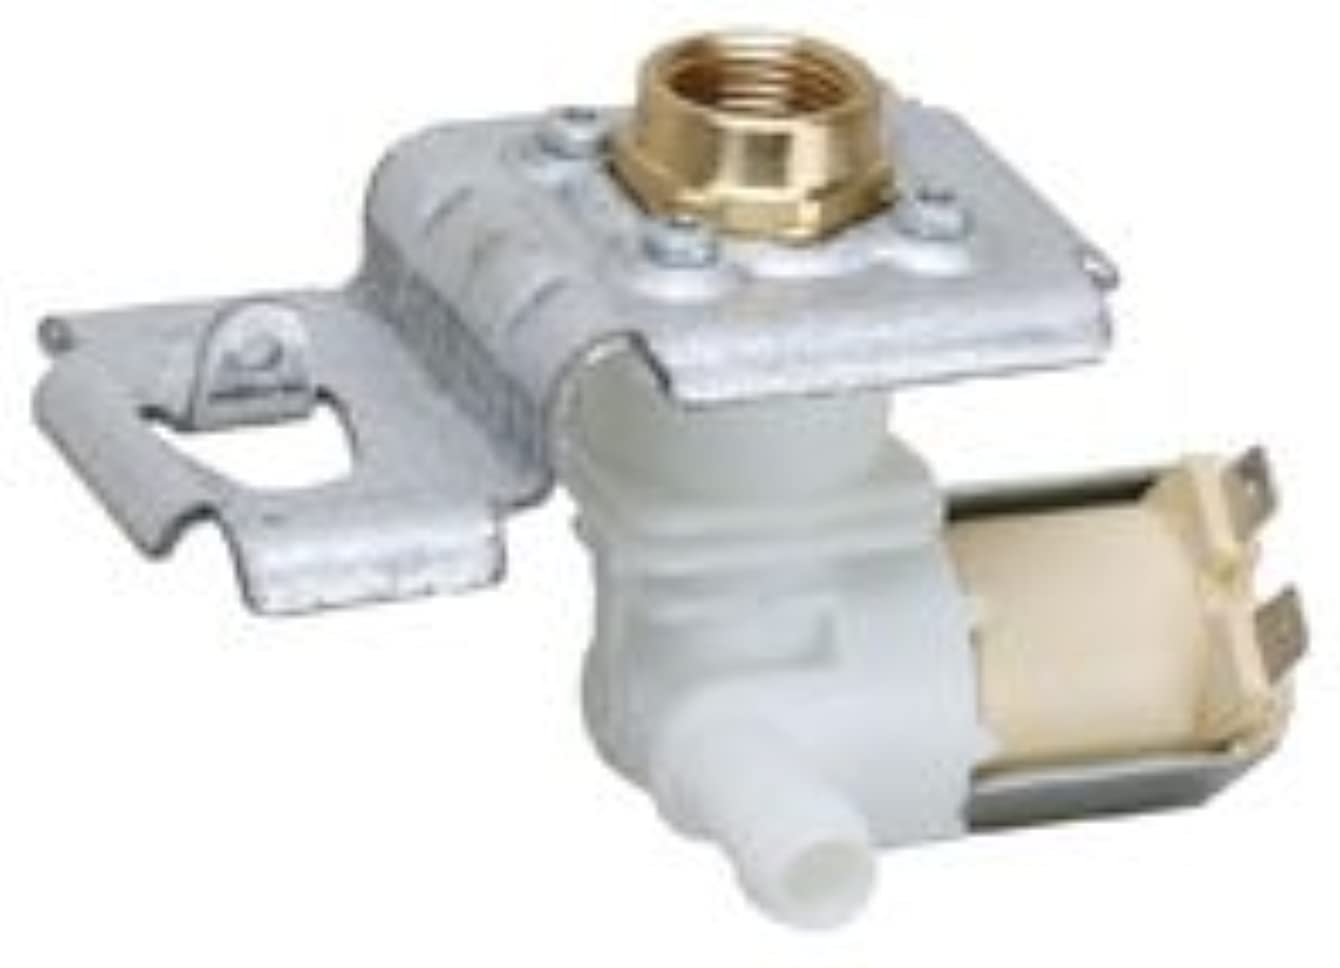 961991 DISHWASHER WATER VALVE INLET REPAIR PART FOR WHIRLPOOL, AMANA, MAYTAG, KENMORE AND MORE